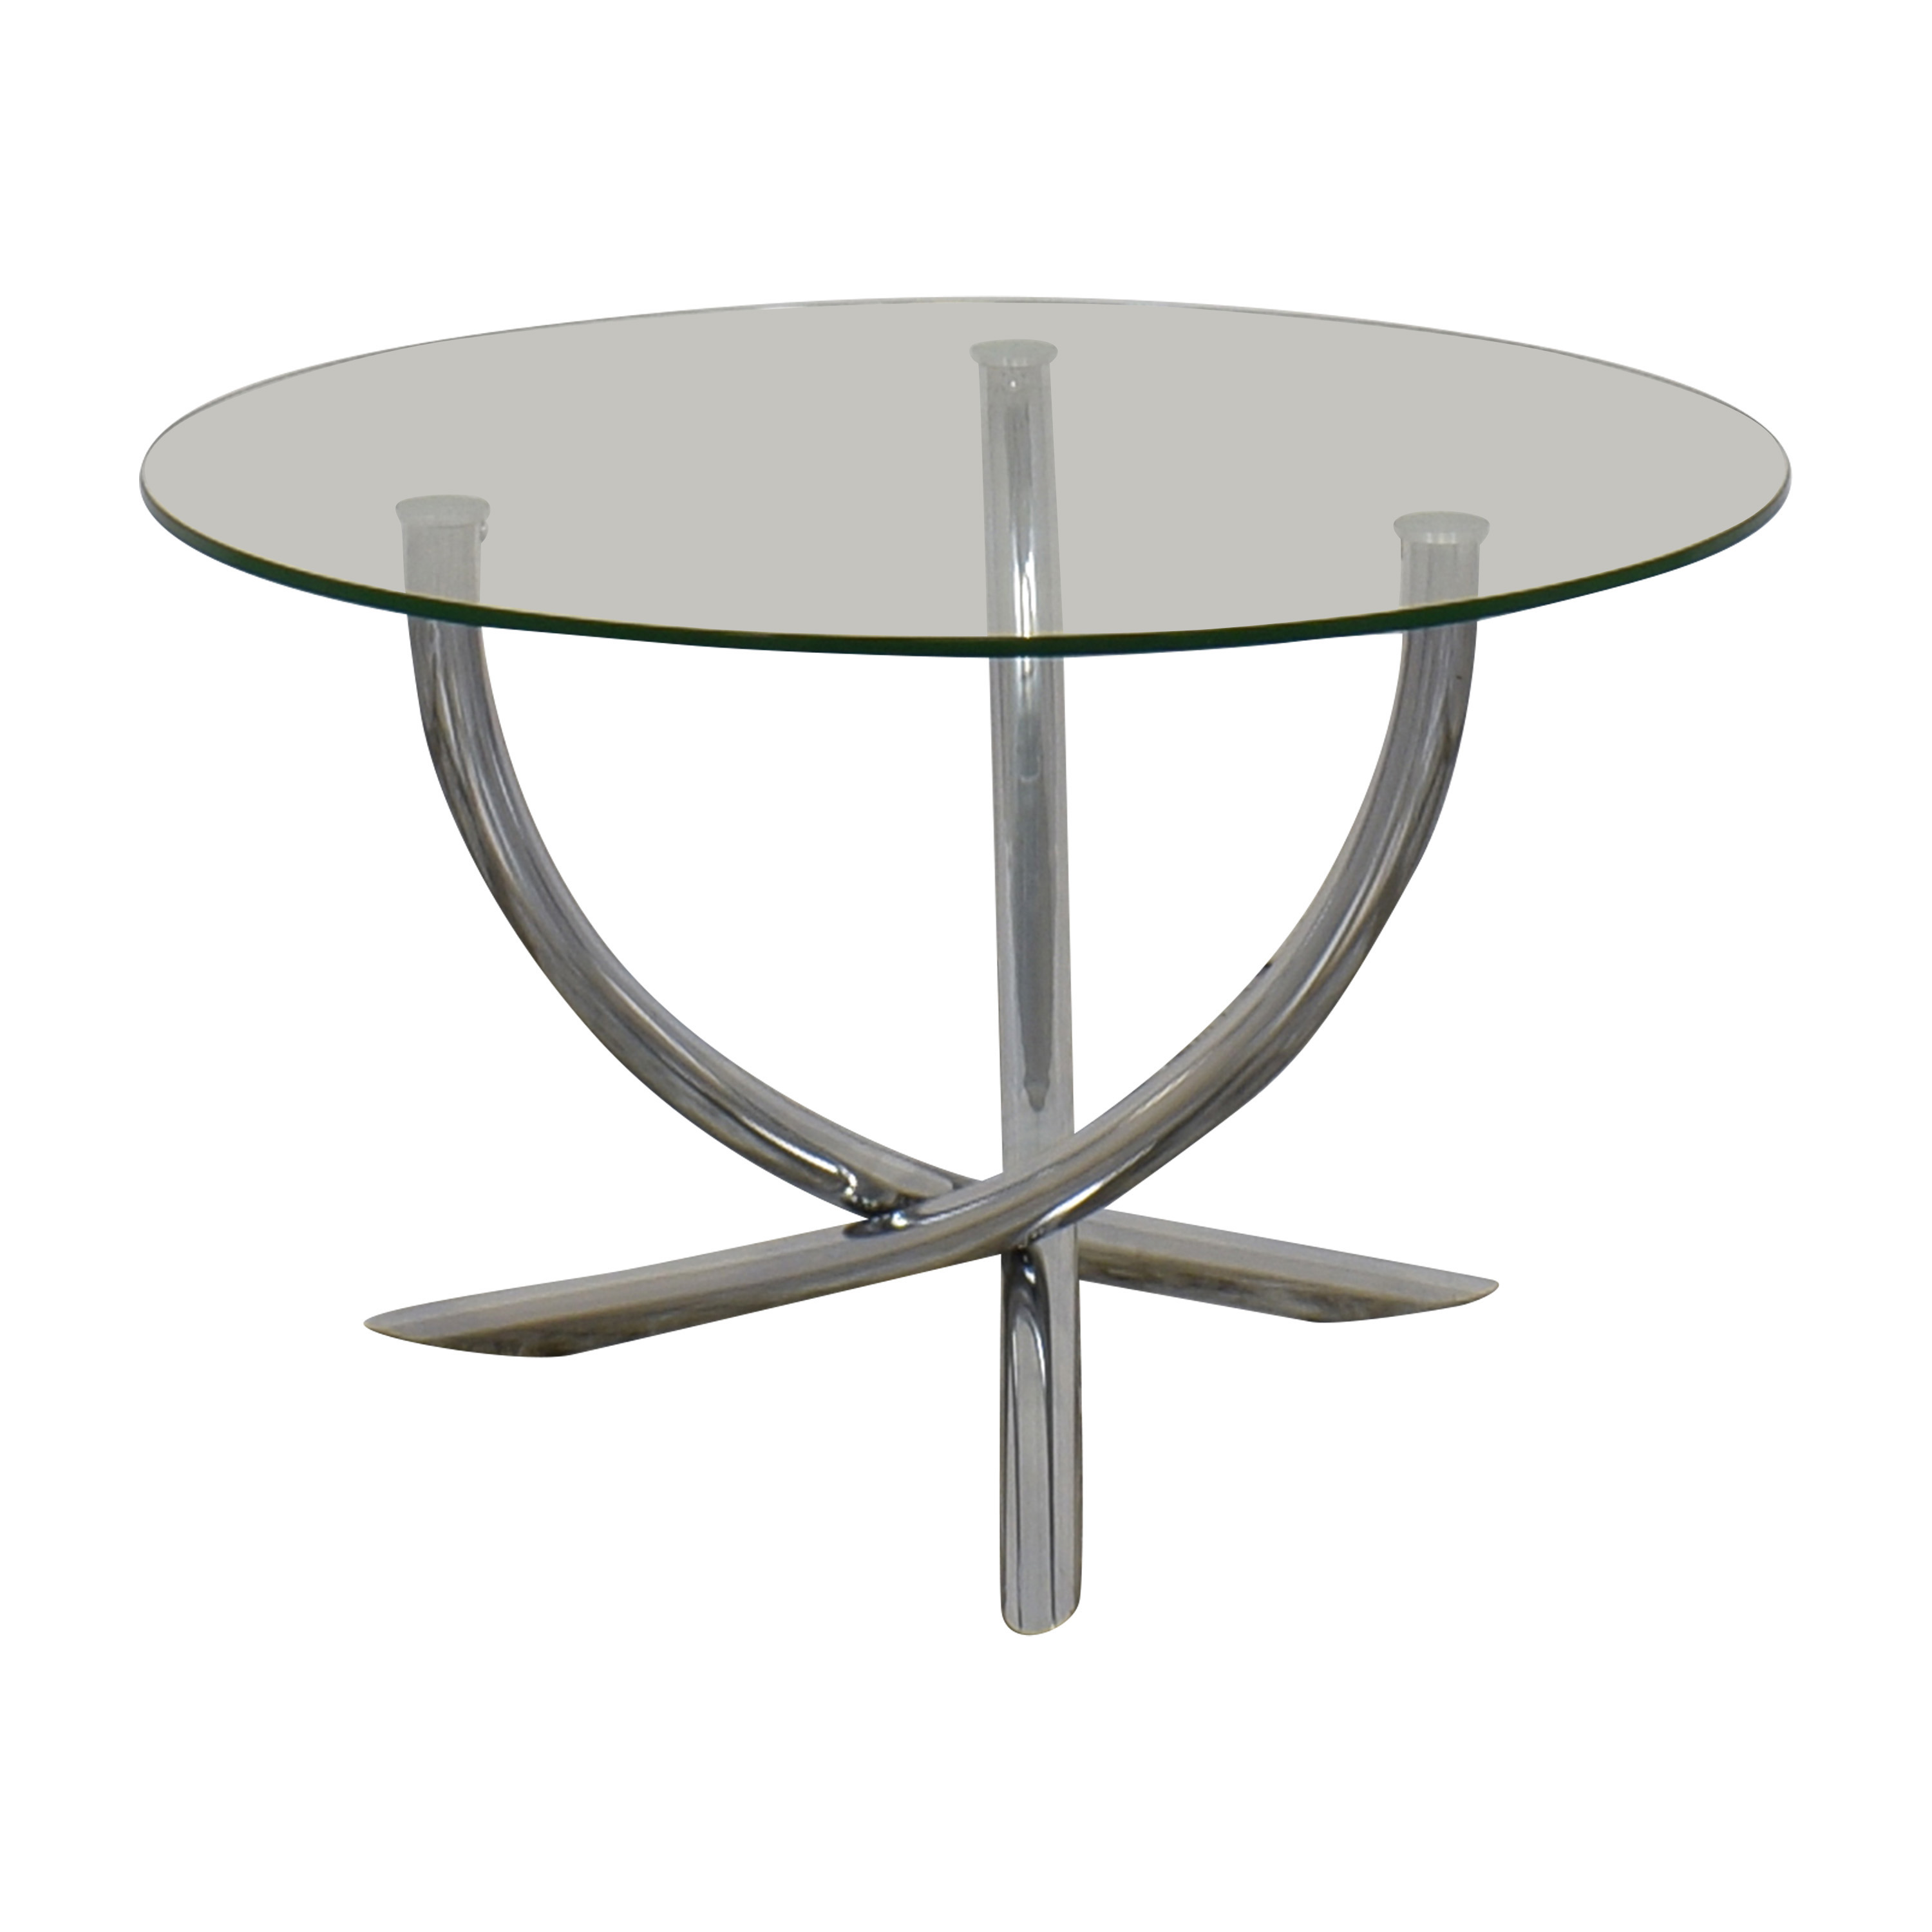 Round Glass Top Table price